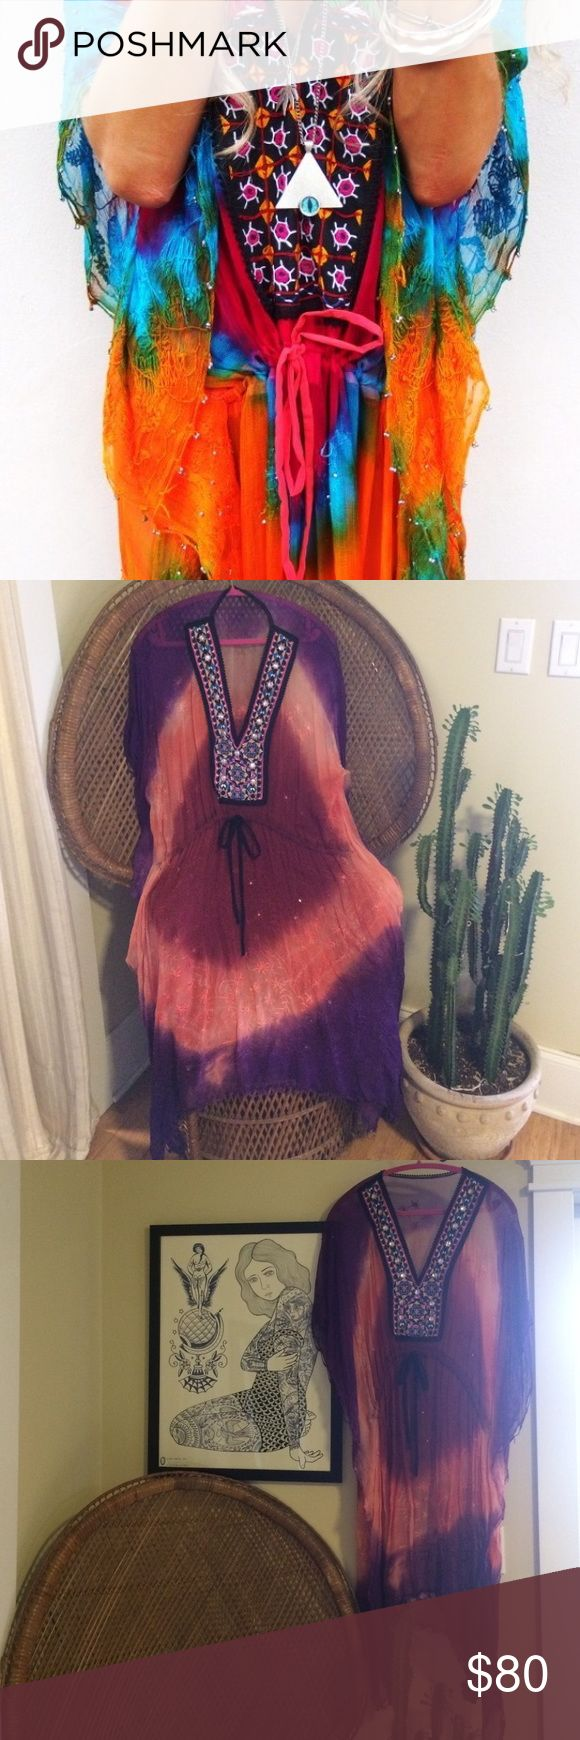 Rat & Boa Kaftan Festival Dress Gorgeous funky see-through Rat&Boa Kaftan dress. Purple/red/pink. Dress can be tightened at waist. Worn only once. I believe it is sized S however there is no tag. I am size 2-4 Dresses